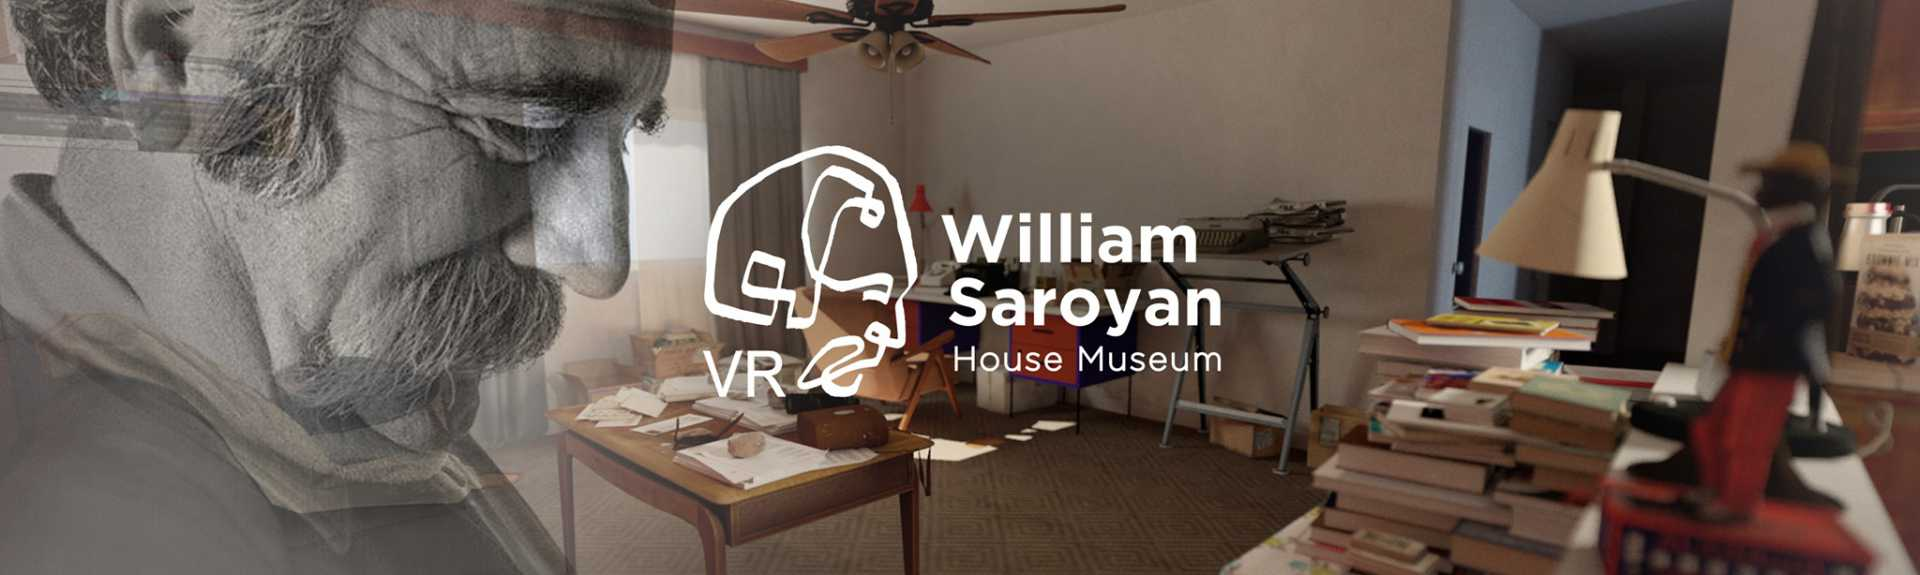 William Saroyan House-Museum VR